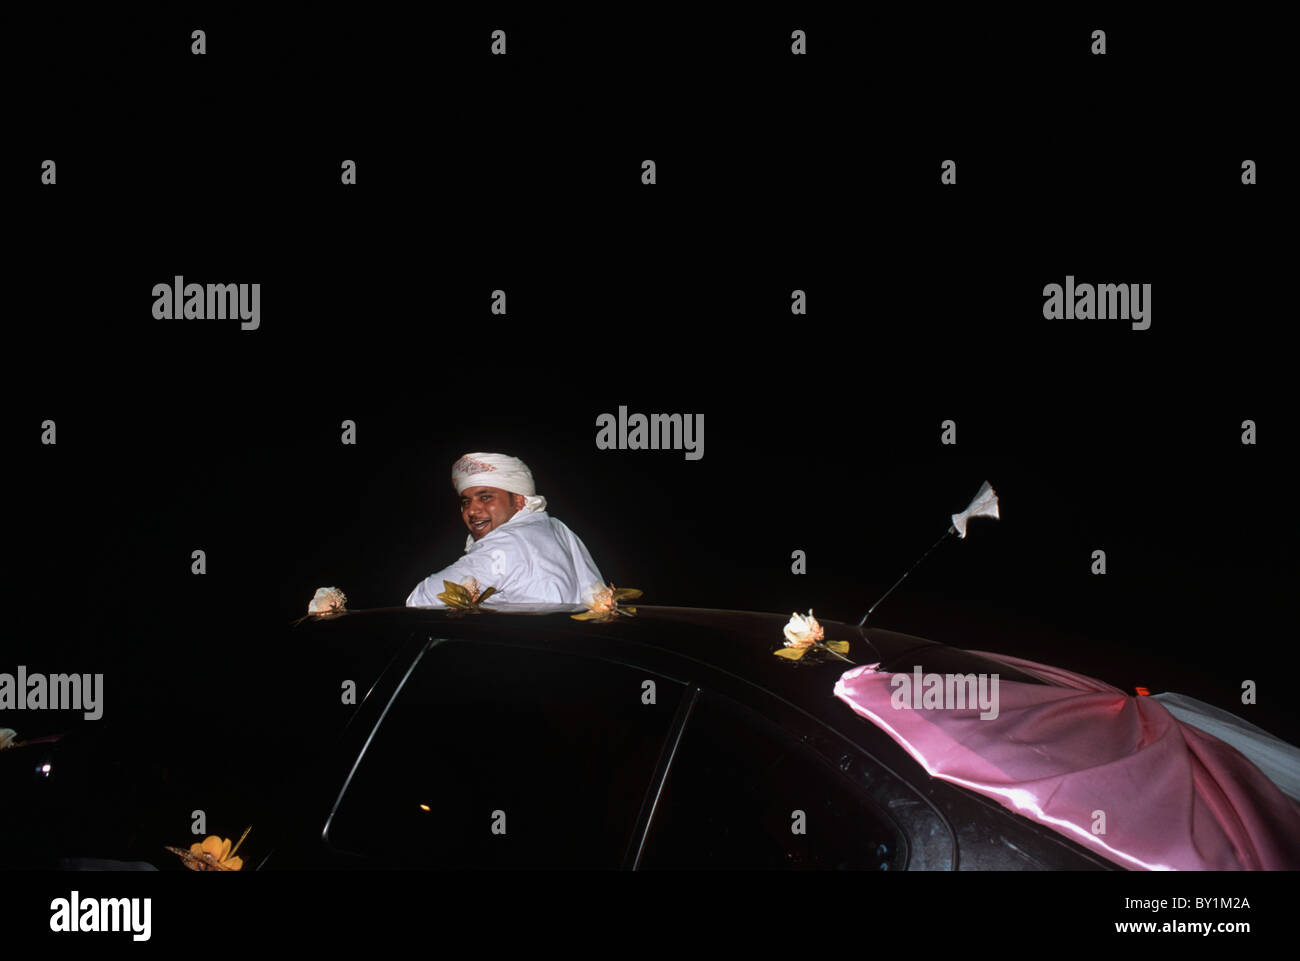 Bedouin groom on celebratory ride after picking up bride at her home. El Tur, Sinai Peninsula, Egypt - Stock Image